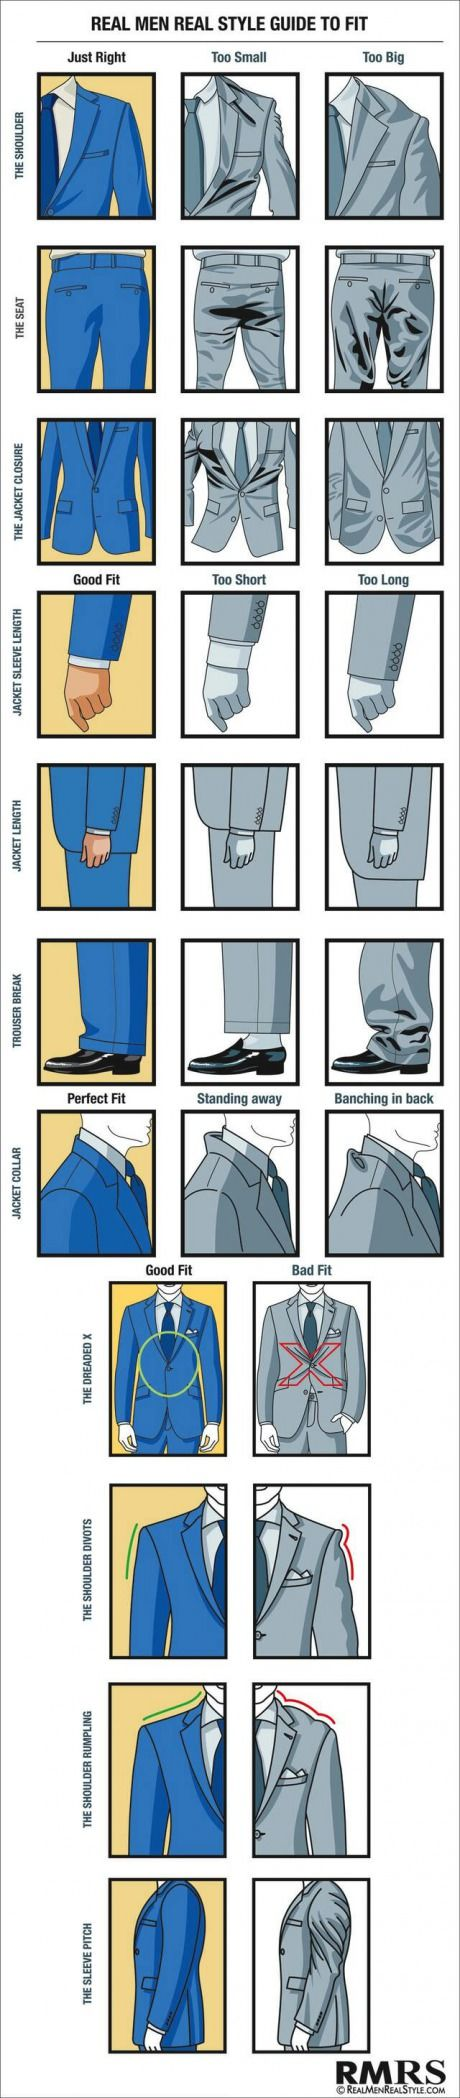 Men's guide to proper fitting of suits  Had to pin this for the boyfriend.